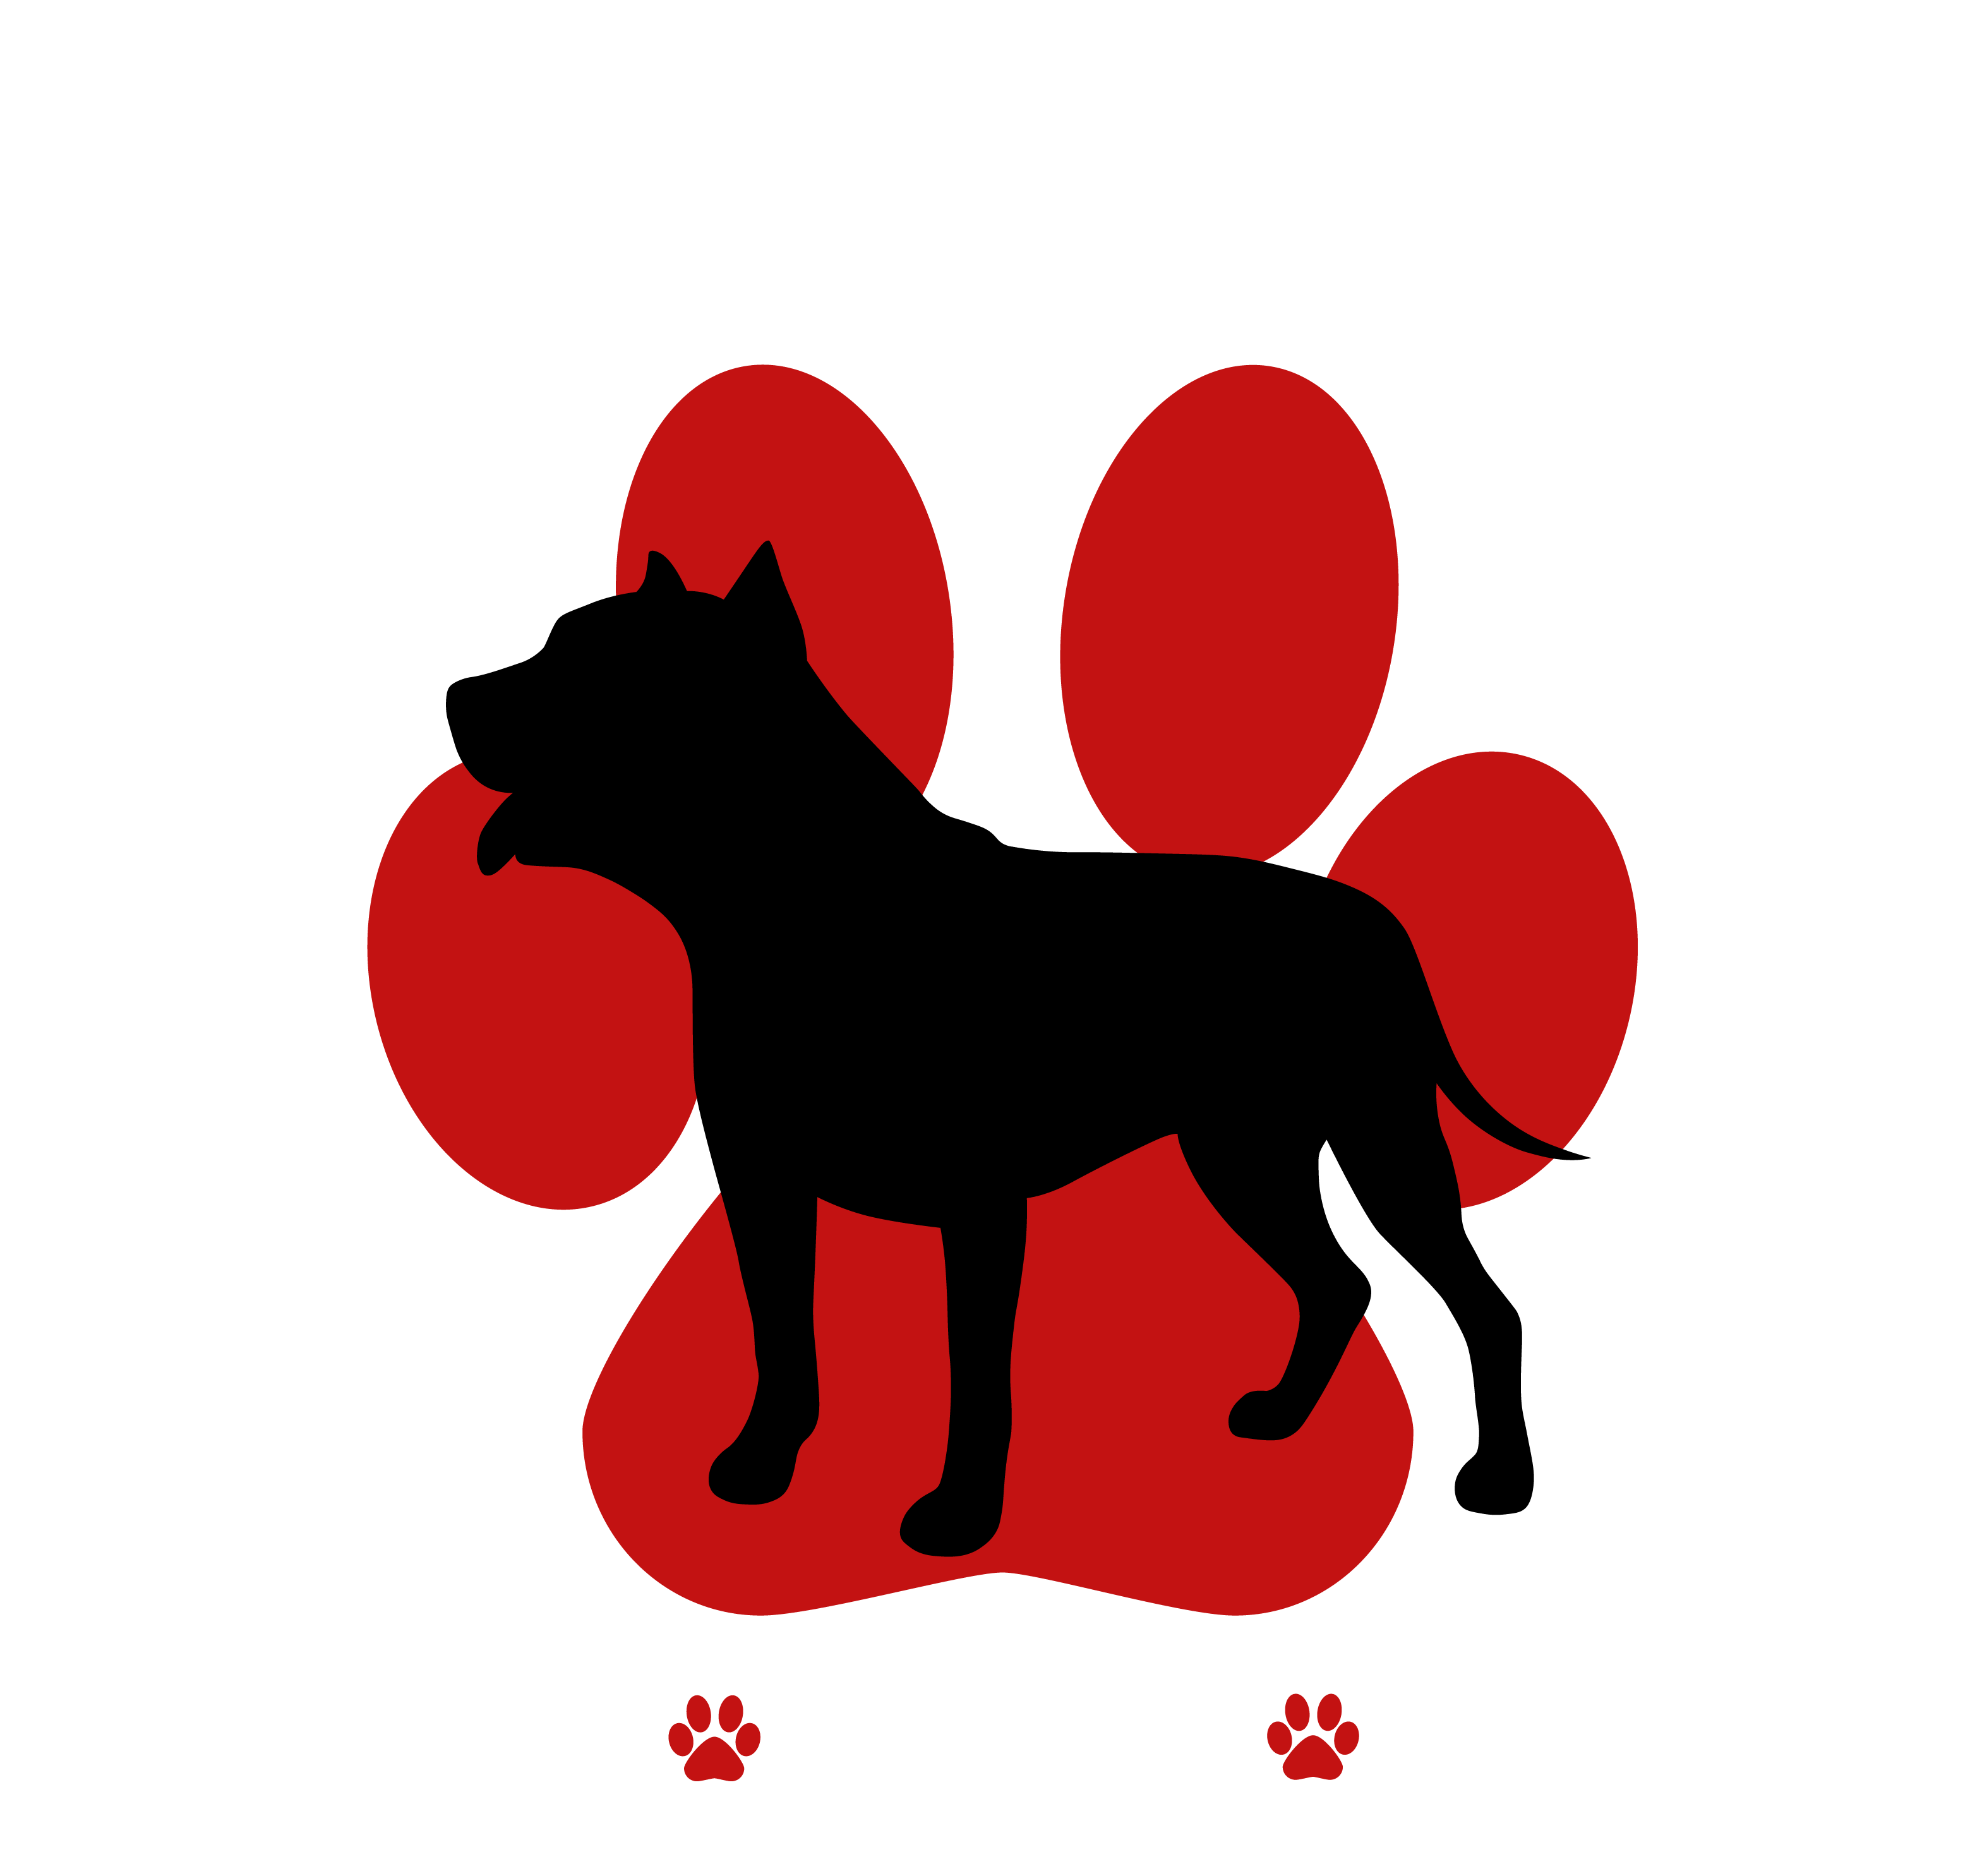 Patras Pitty Project White Text TRANSPARENT BG